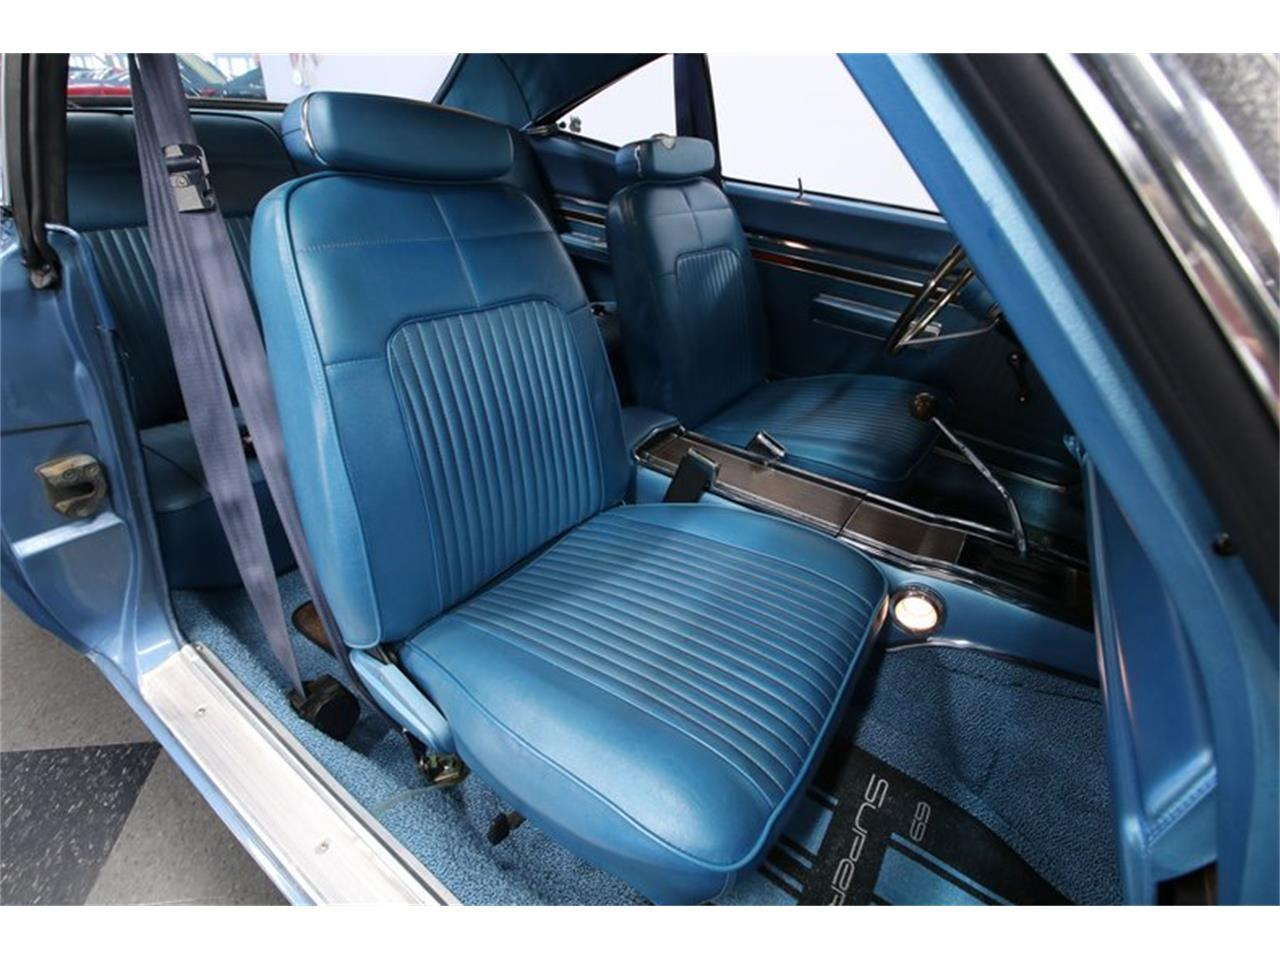 Large Picture of Classic '69 Dodge Super Bee located in Florida - $43,995.00 Offered by Streetside Classics - Tampa - QP0O